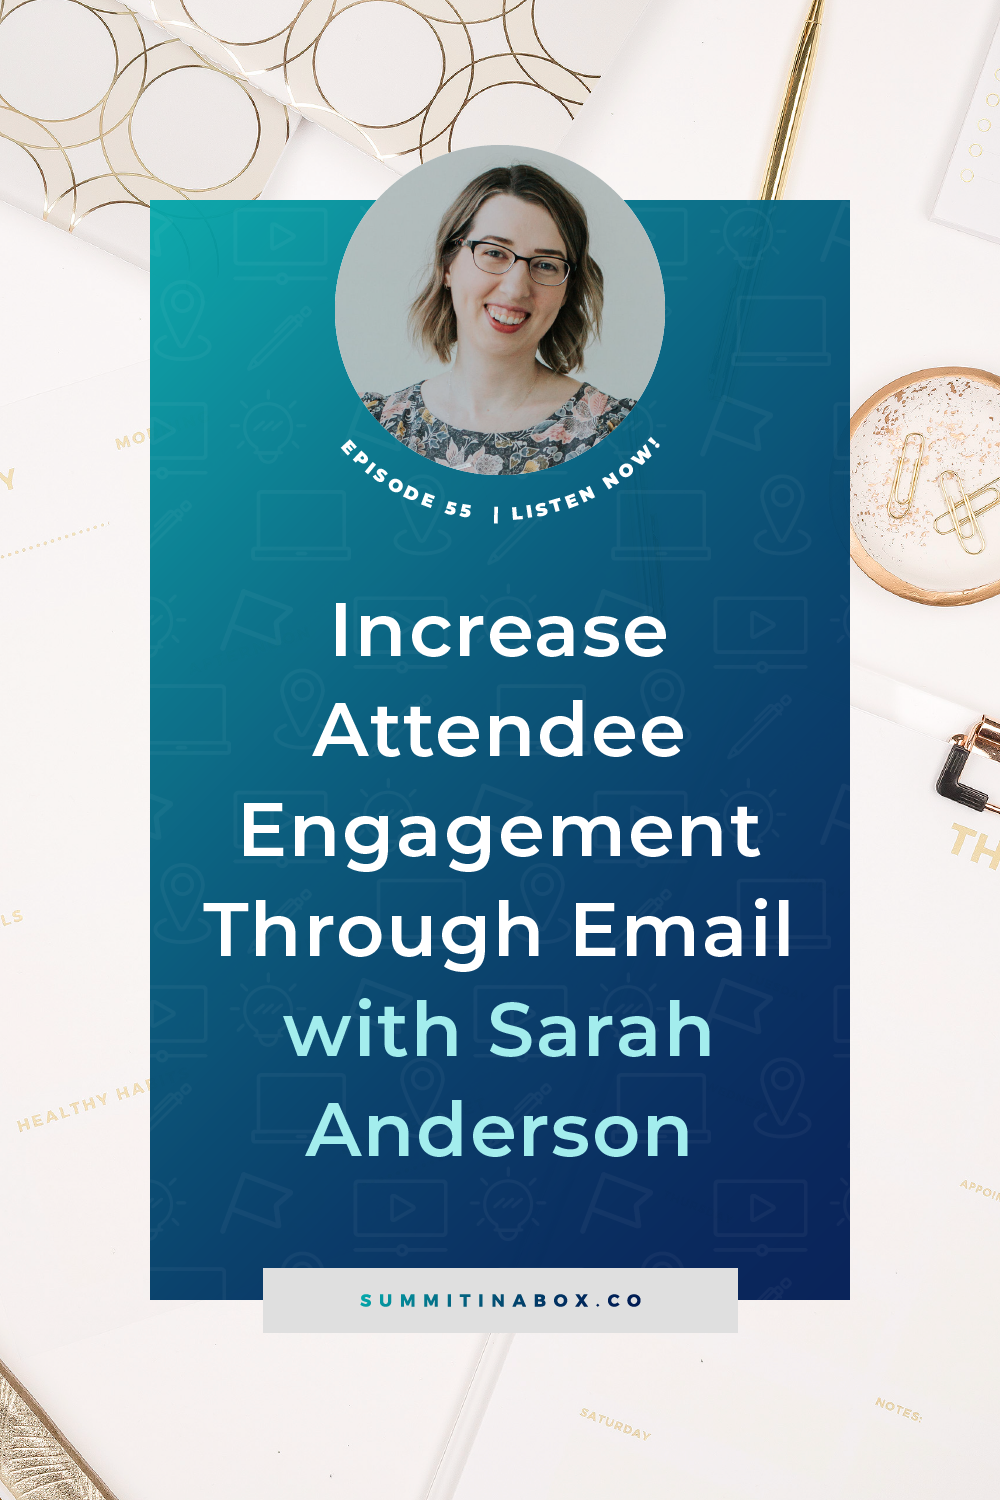 If your virtual summit emails aren't engaging they'll drive attendees away. Here's how to increase attendee engagement through email throughout the process!